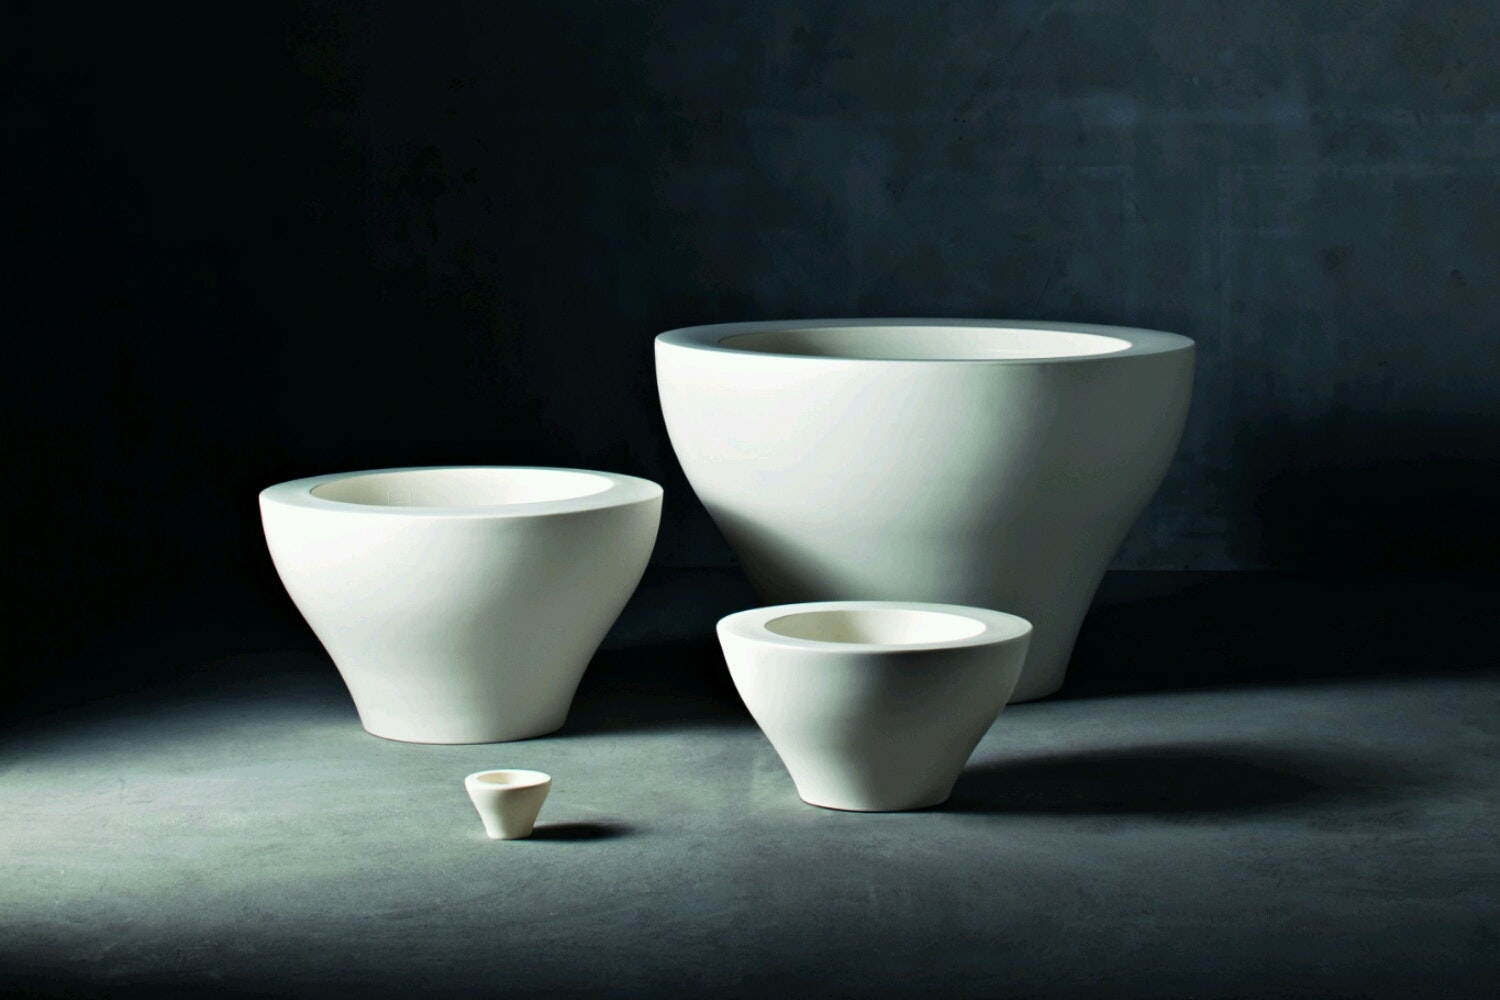 Ming Pot Family by Rodolfo Dordoni for Serralunga